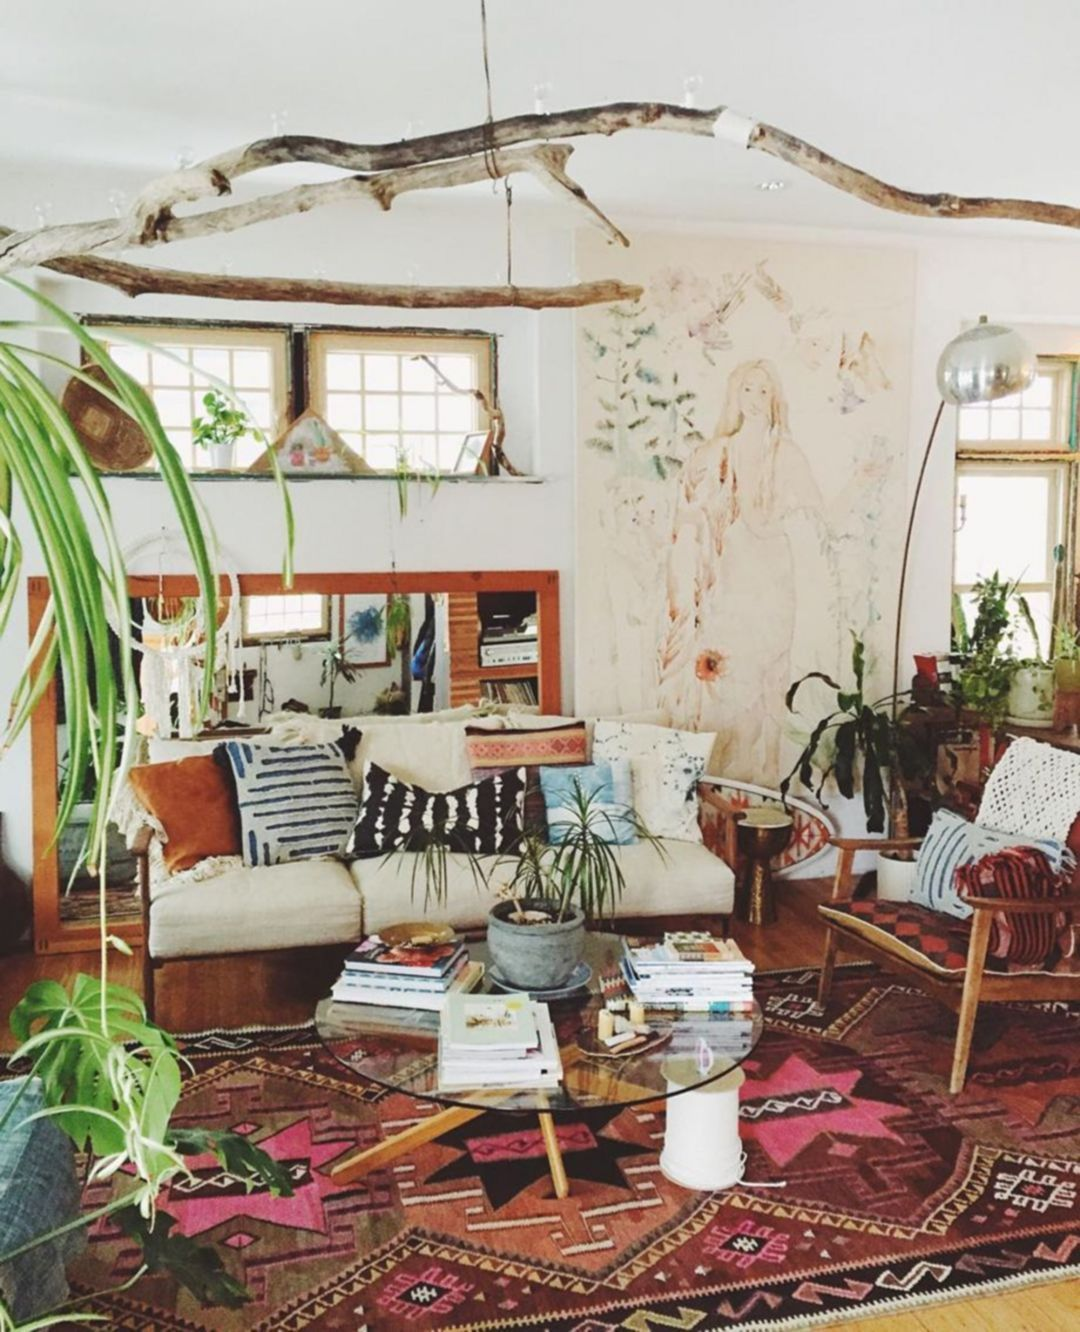 25 Chic Farmhouse Bohemian Living Room Decorations That Will Give You Warm And Cheerful Nuances Living Room Design Boho Bohemian Style Living Room Boho Living Room